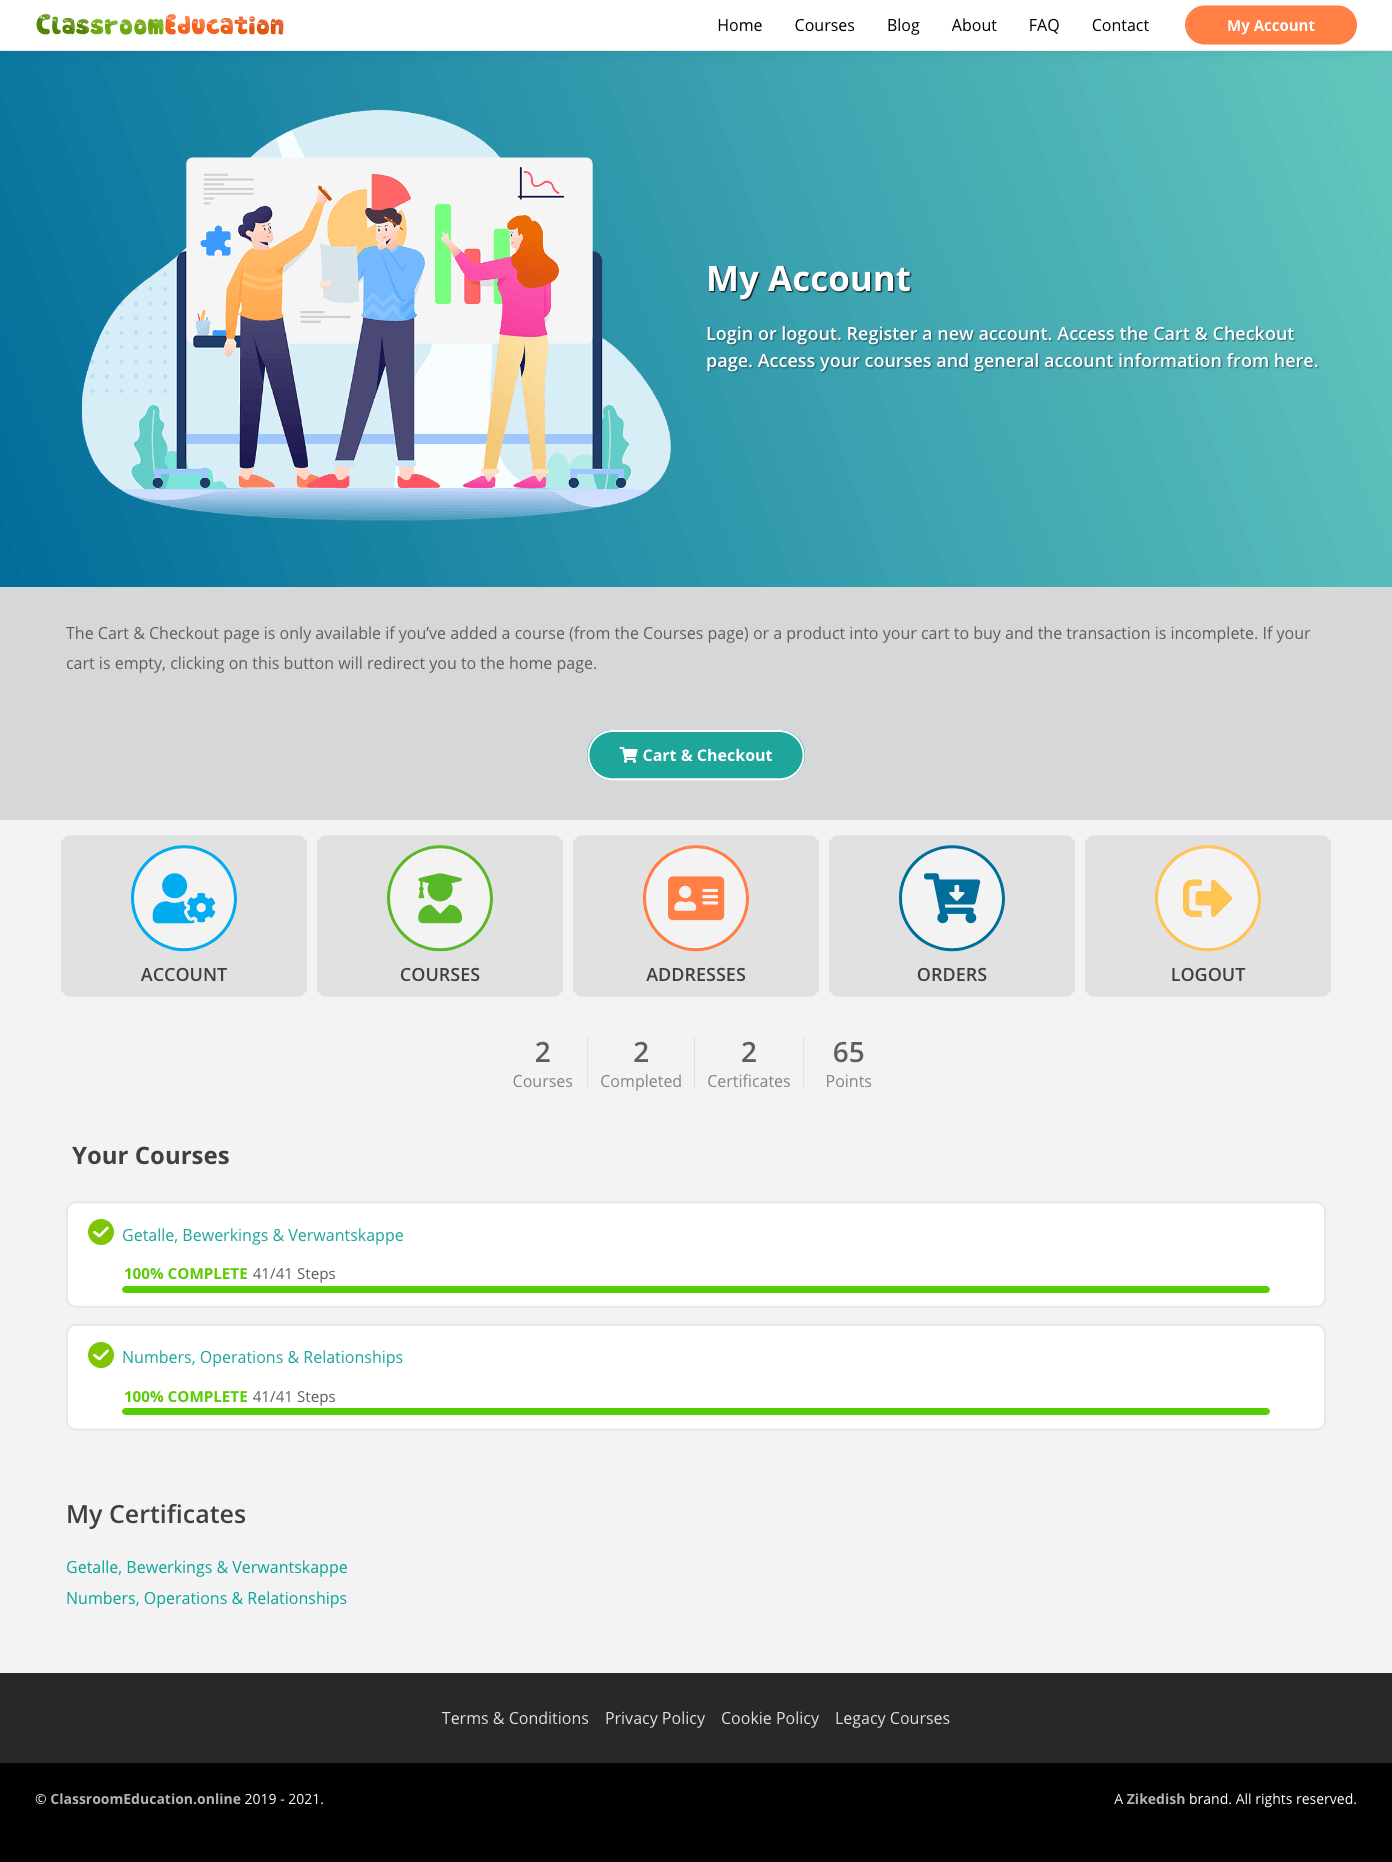 My Account-Logged-in-ClassroomEducation